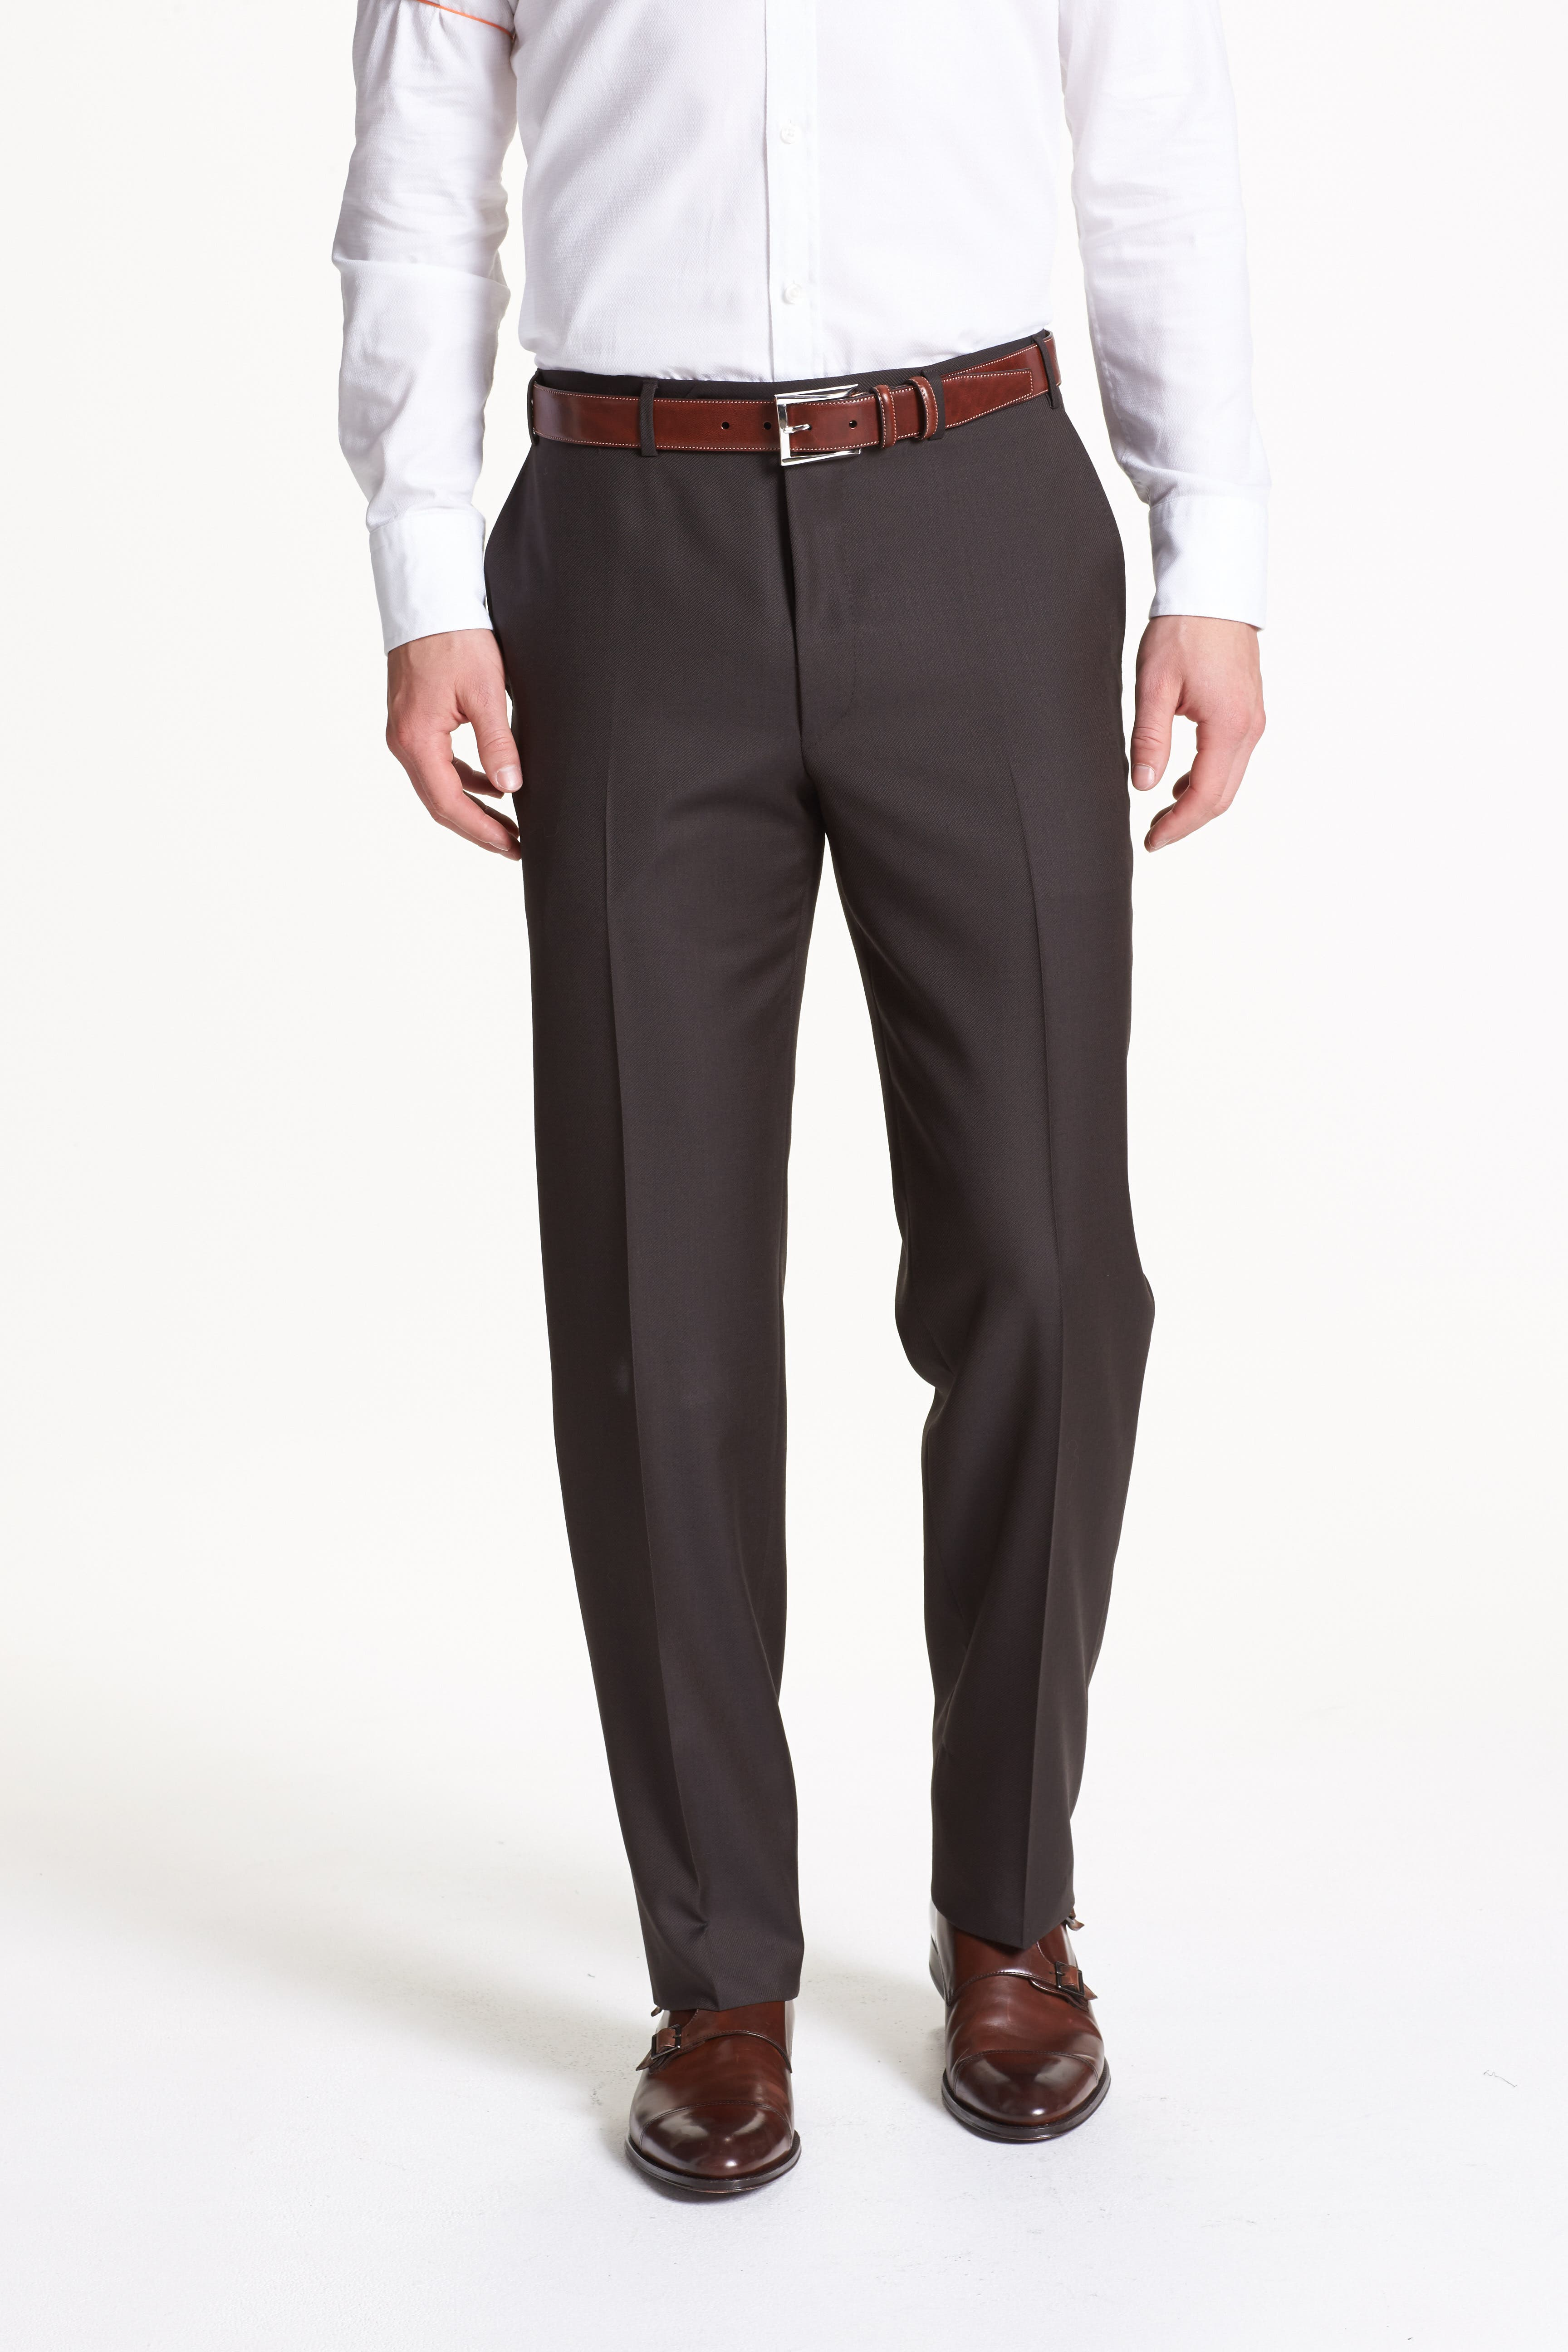 CANALI, Flat Front Solid Wool Trousers, Main thumbnail 1, color, 201